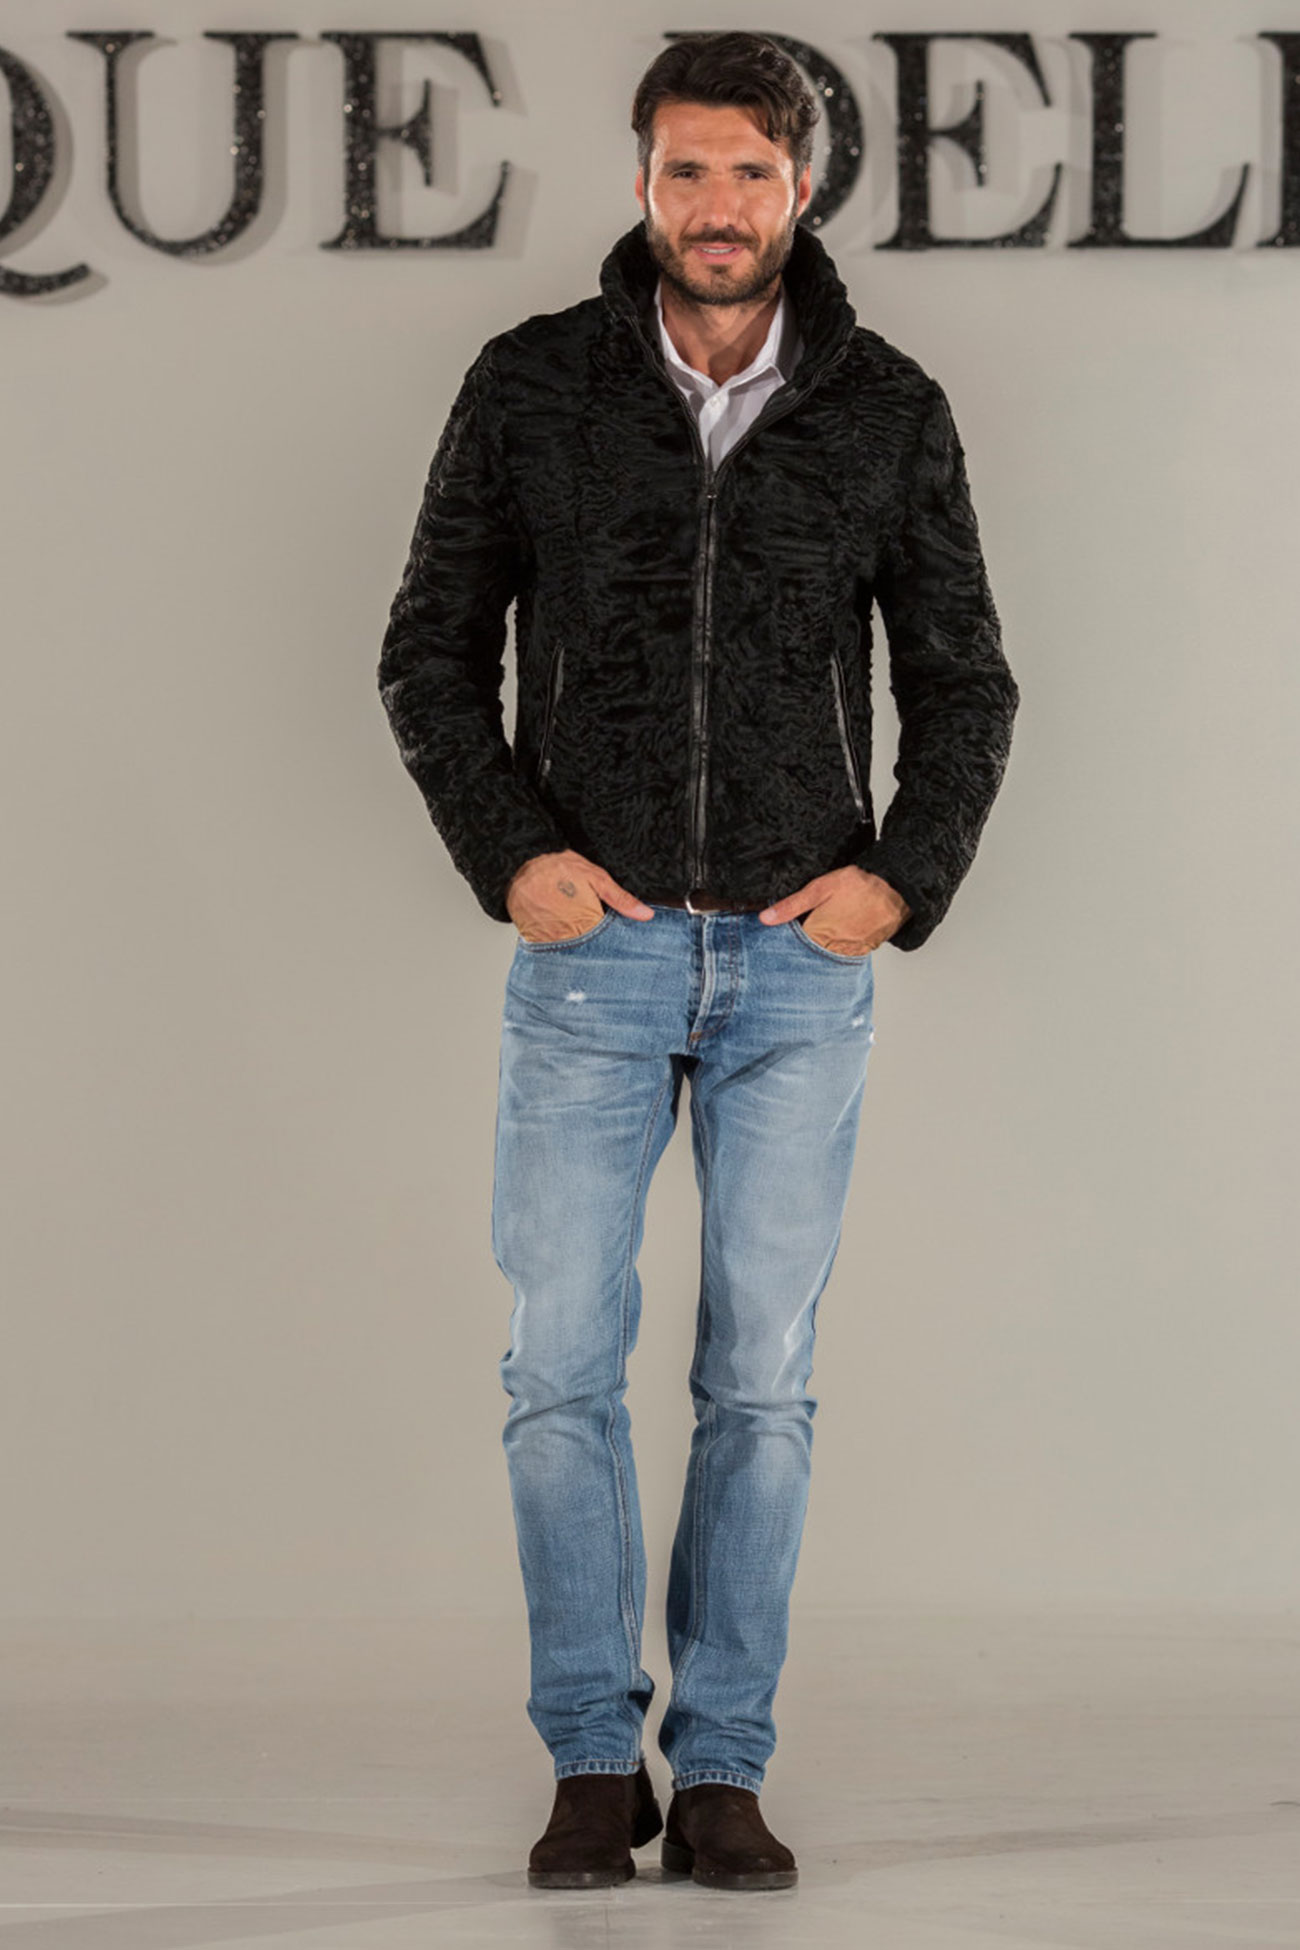 Persian fur jacket